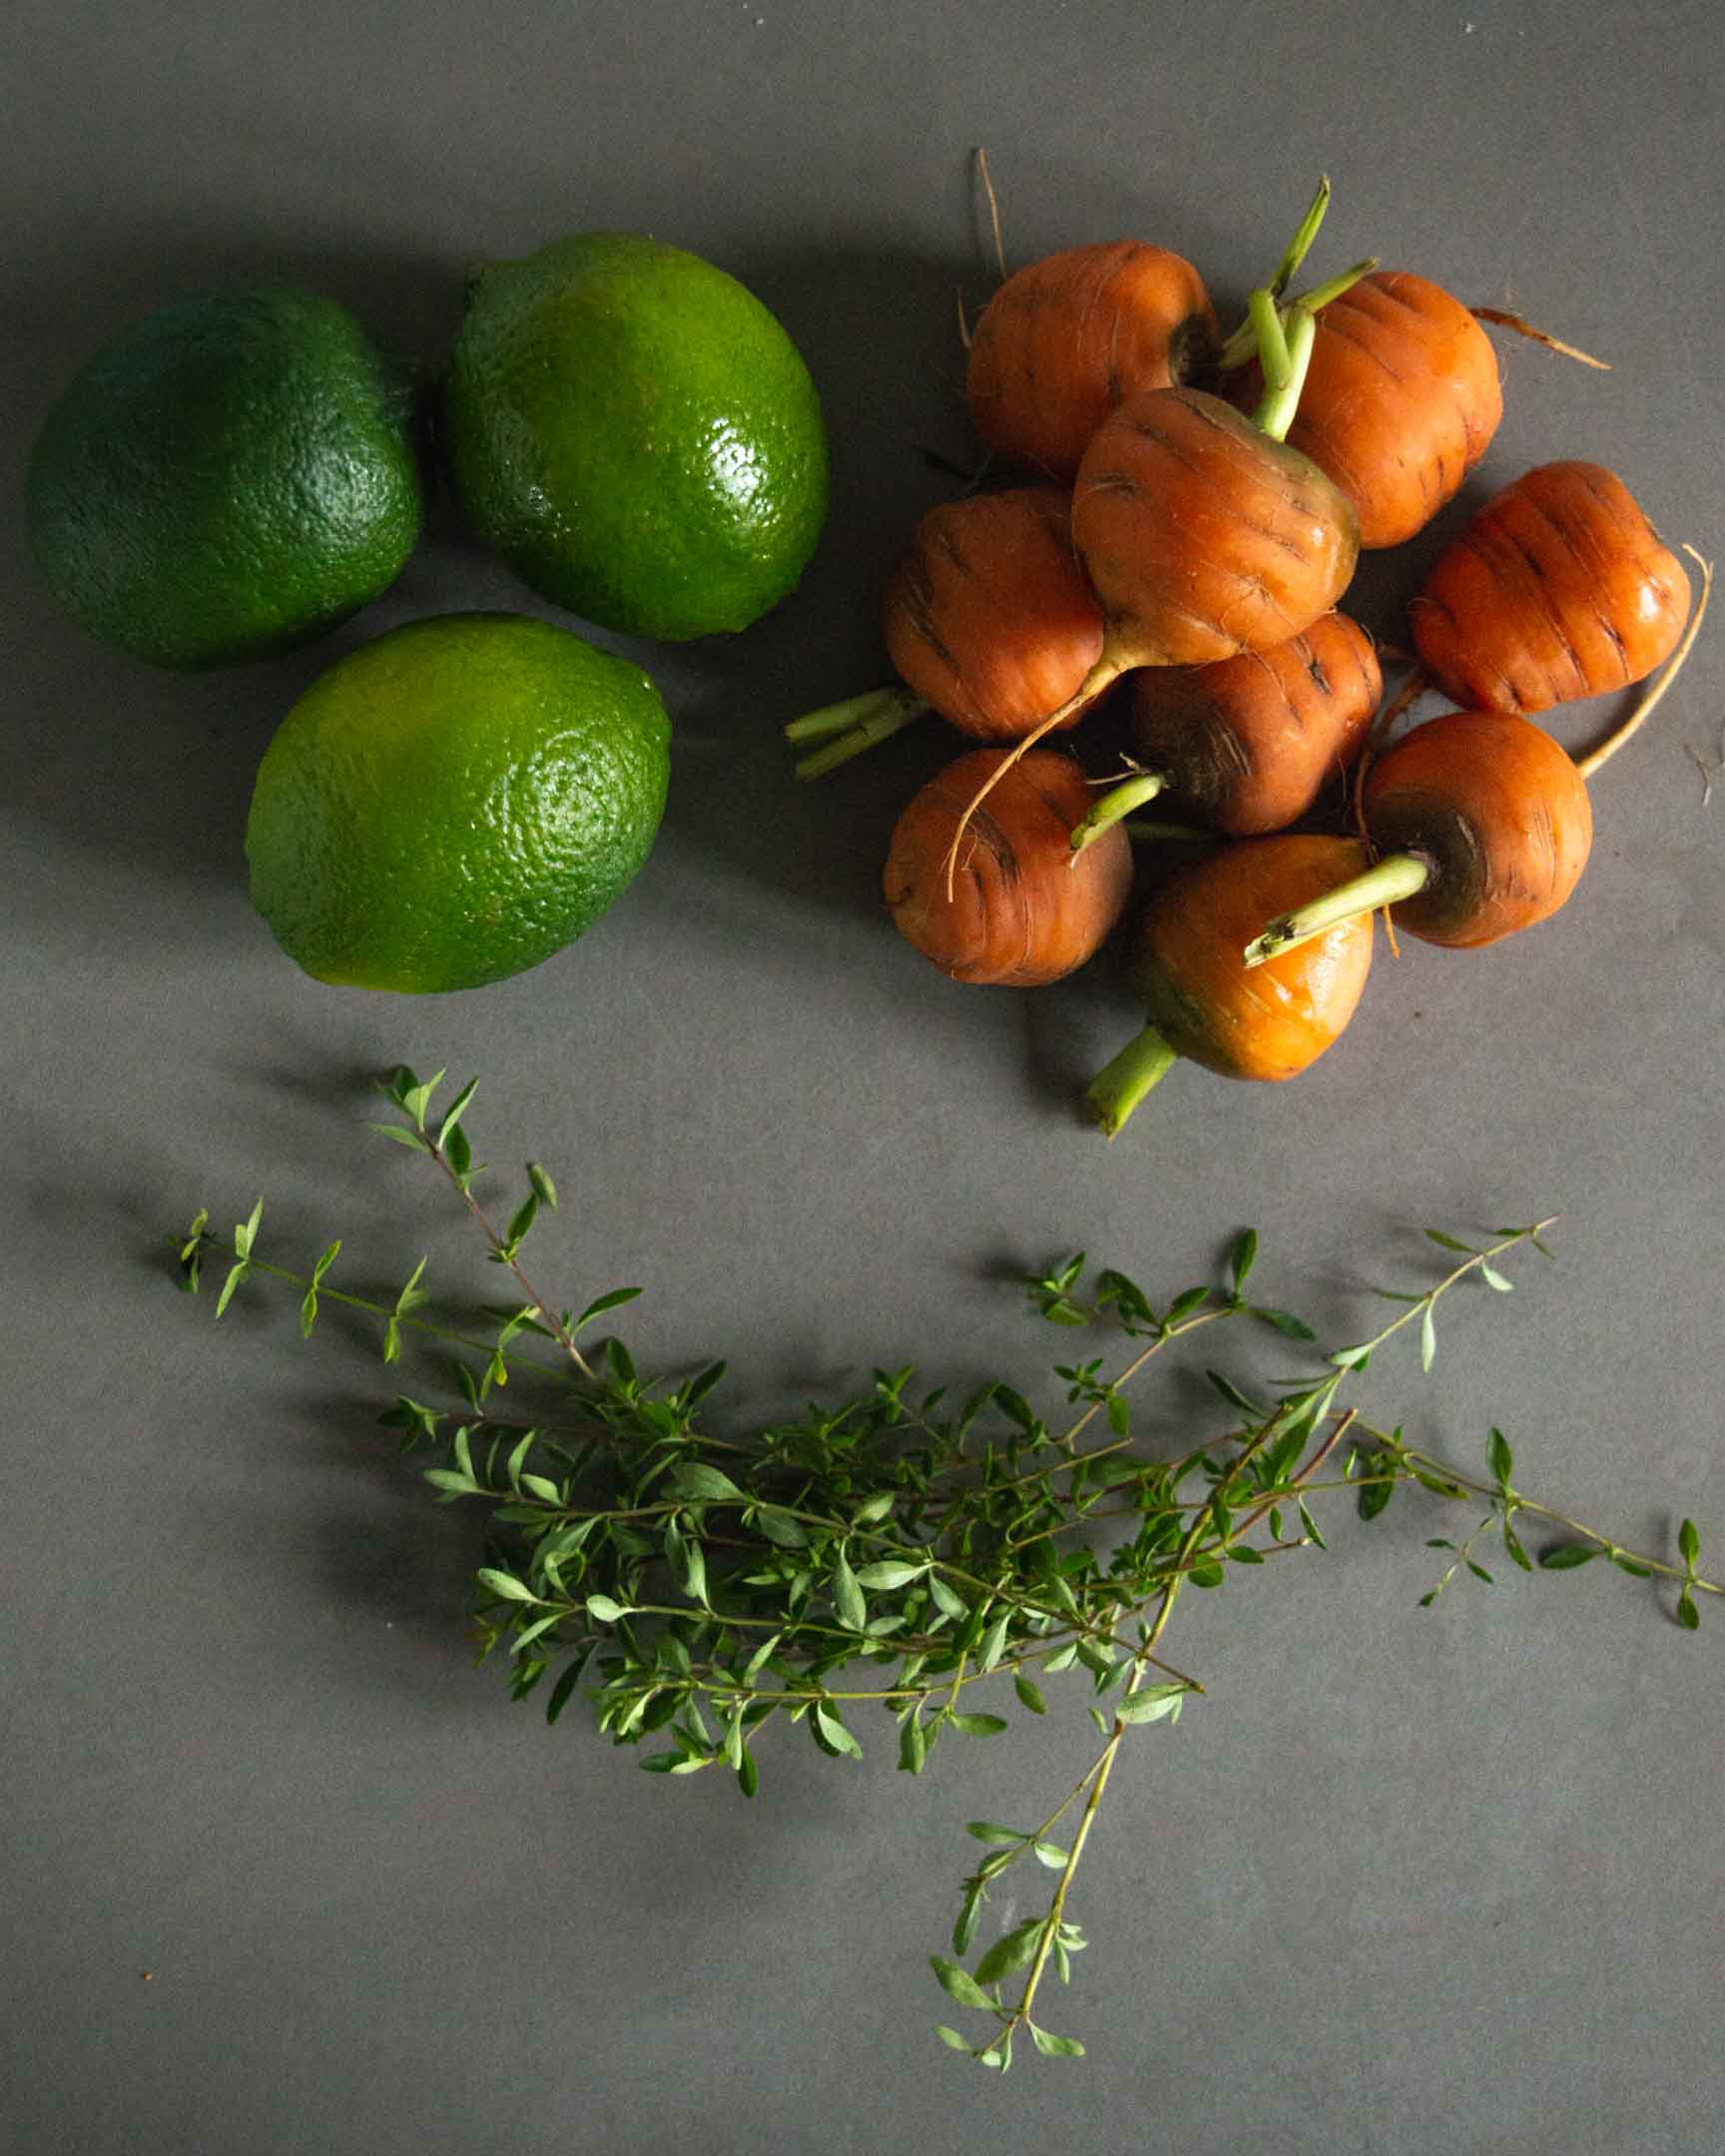 limes, Parisienne carrots and fresh thyme sprigs